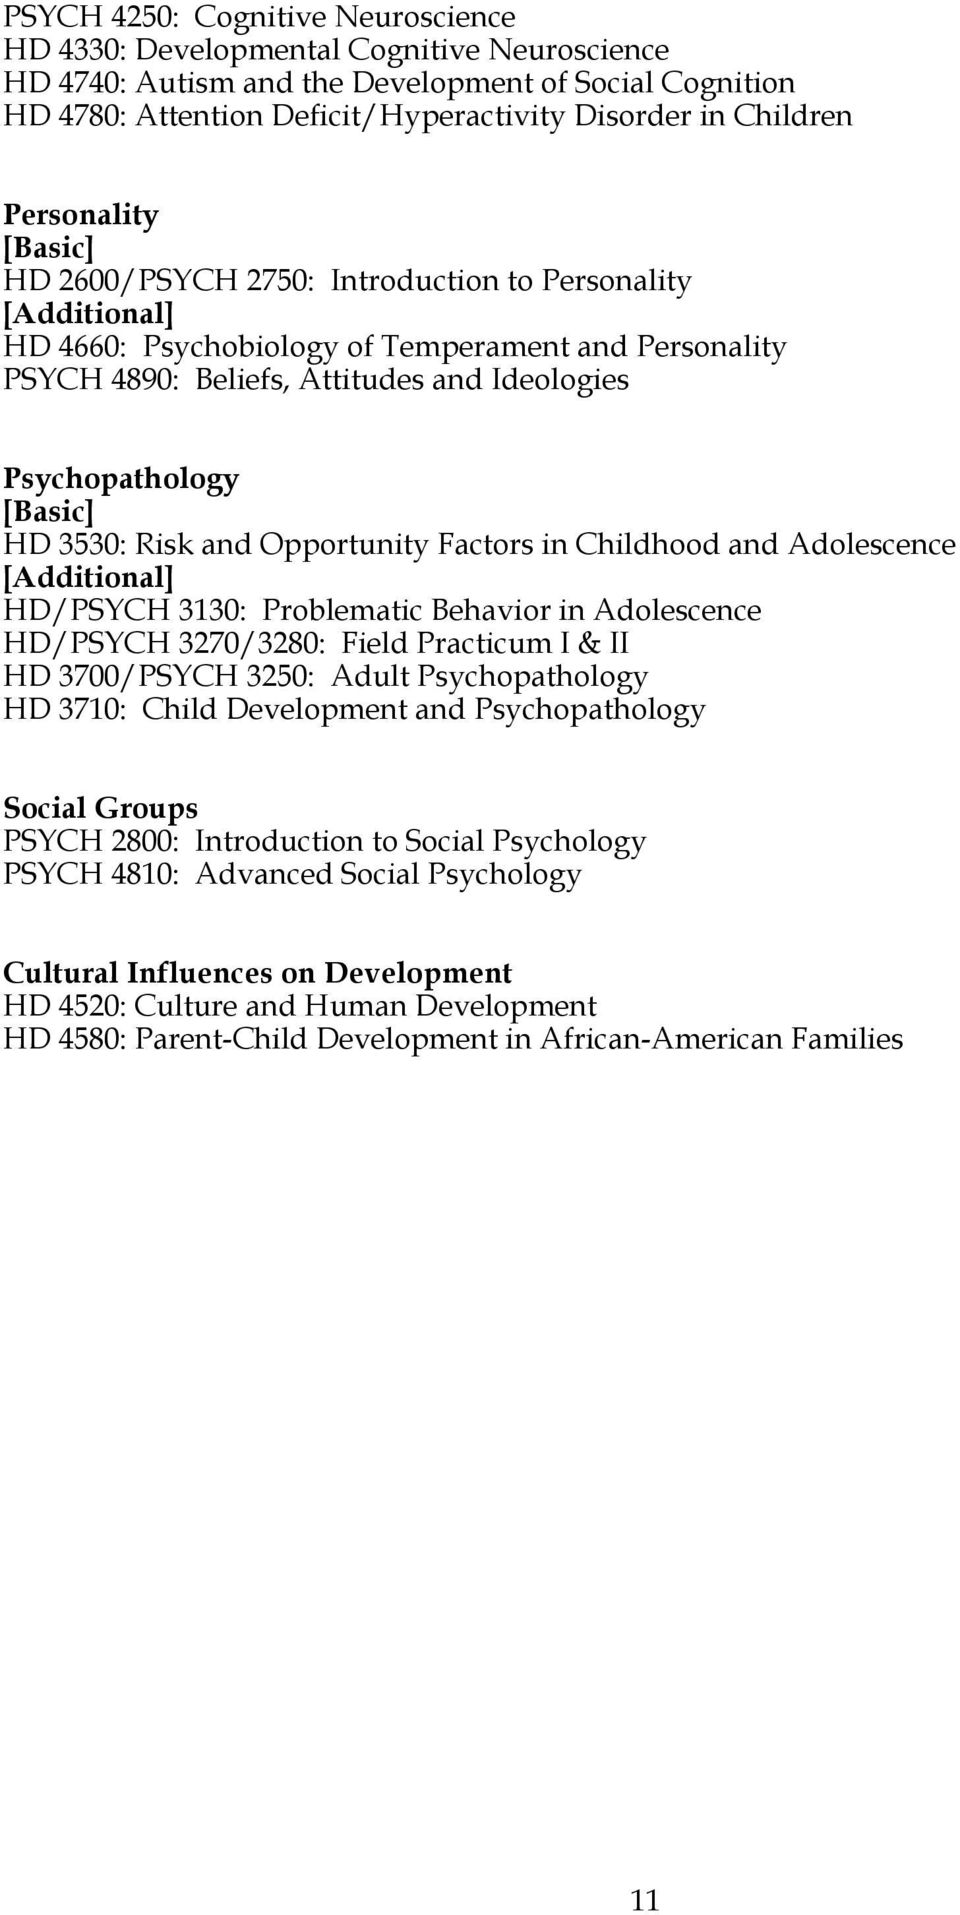 [Basic] HD 3530: Risk and Opportunity Factors in Childhood and Adolescence [Additional] HD/PSYCH 3130: Problematic Behavior in Adolescence HD/PSYCH 3270/3280: Field Practicum I & II HD 3700/PSYCH